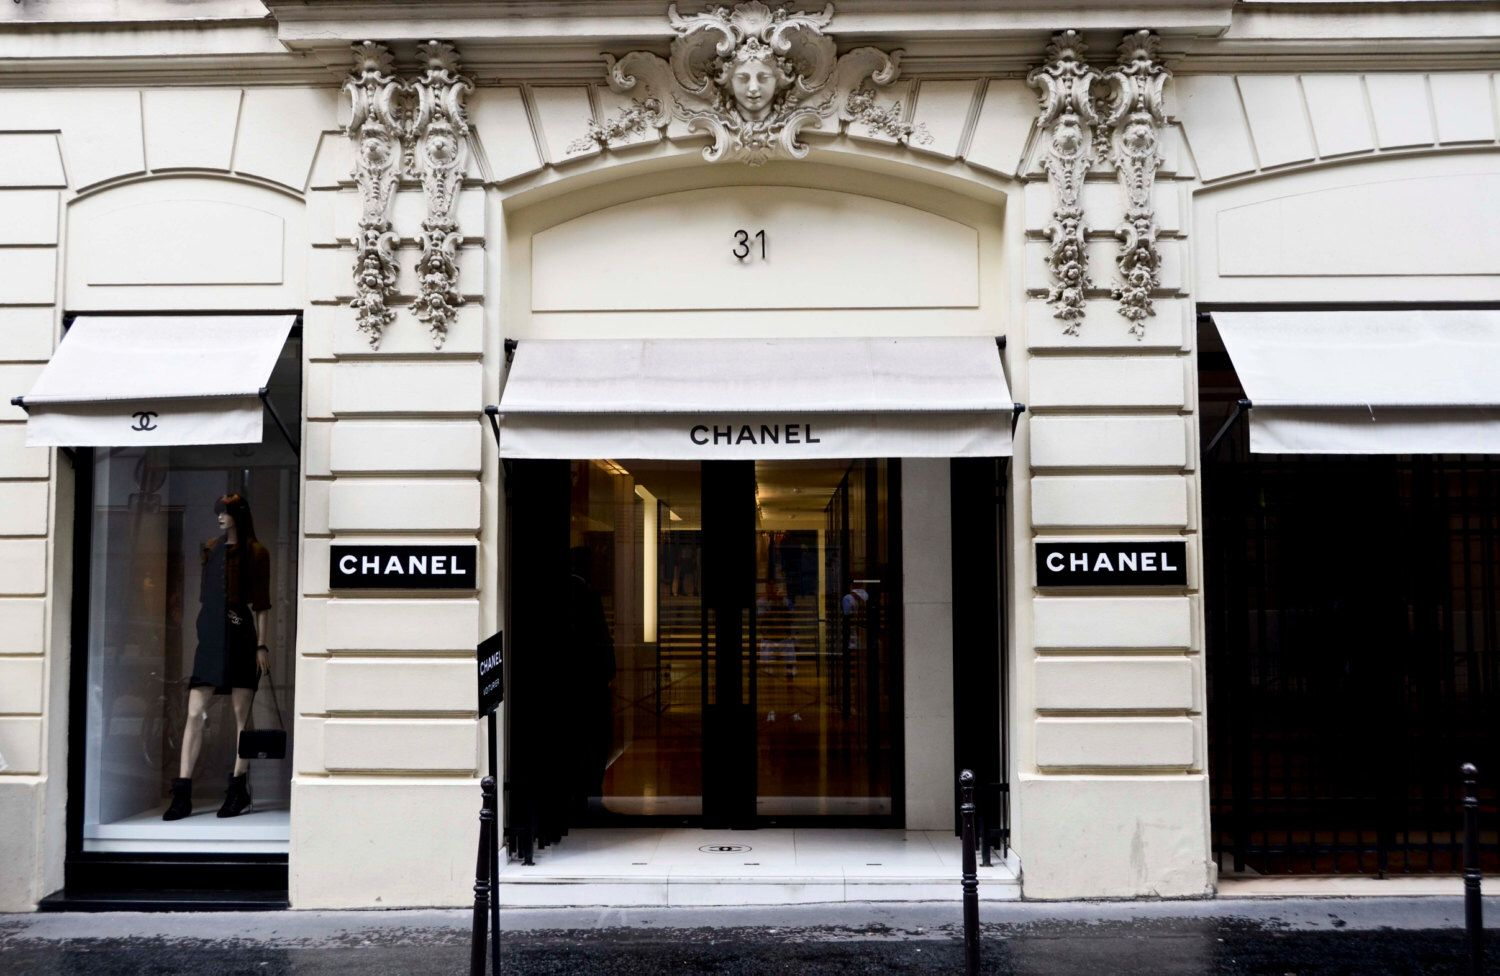 chanel print 31 rue cambon original chanel store in paris france paris print coco chanel. Black Bedroom Furniture Sets. Home Design Ideas